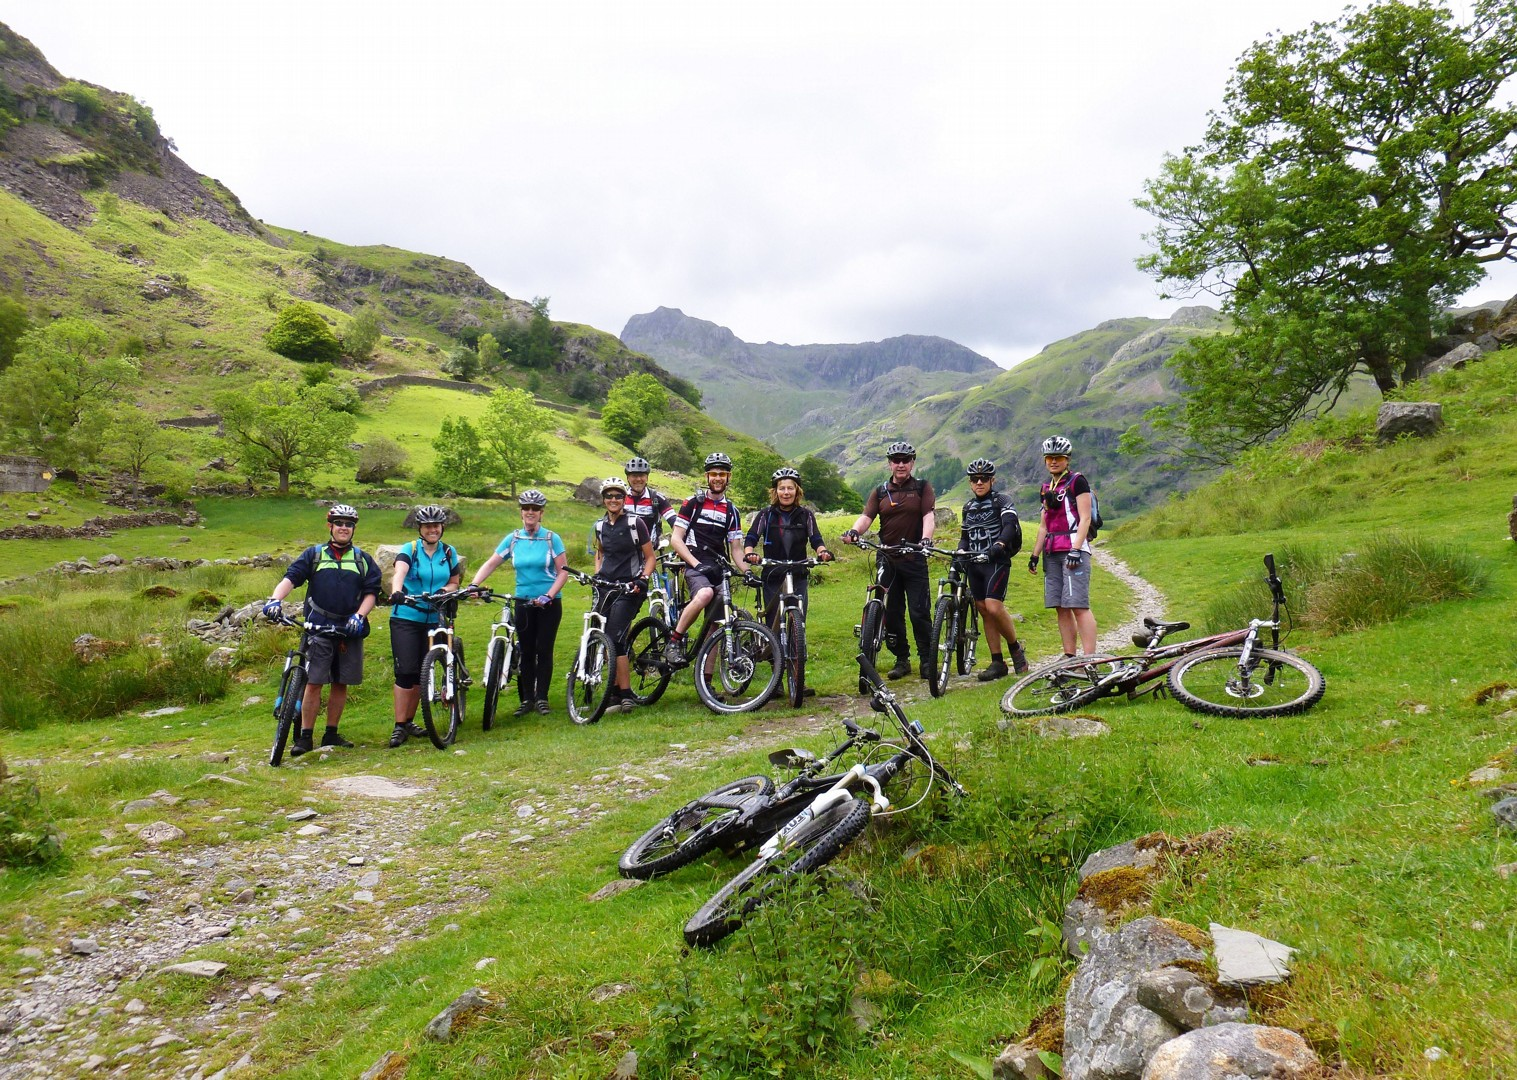 Mountain-Bike-Weekend-UK-Lake-District-Classic-Coniston.jpg - UK - Lake District - Classic Coniston - Guided Mountain Bike Weekend - Mountain Biking